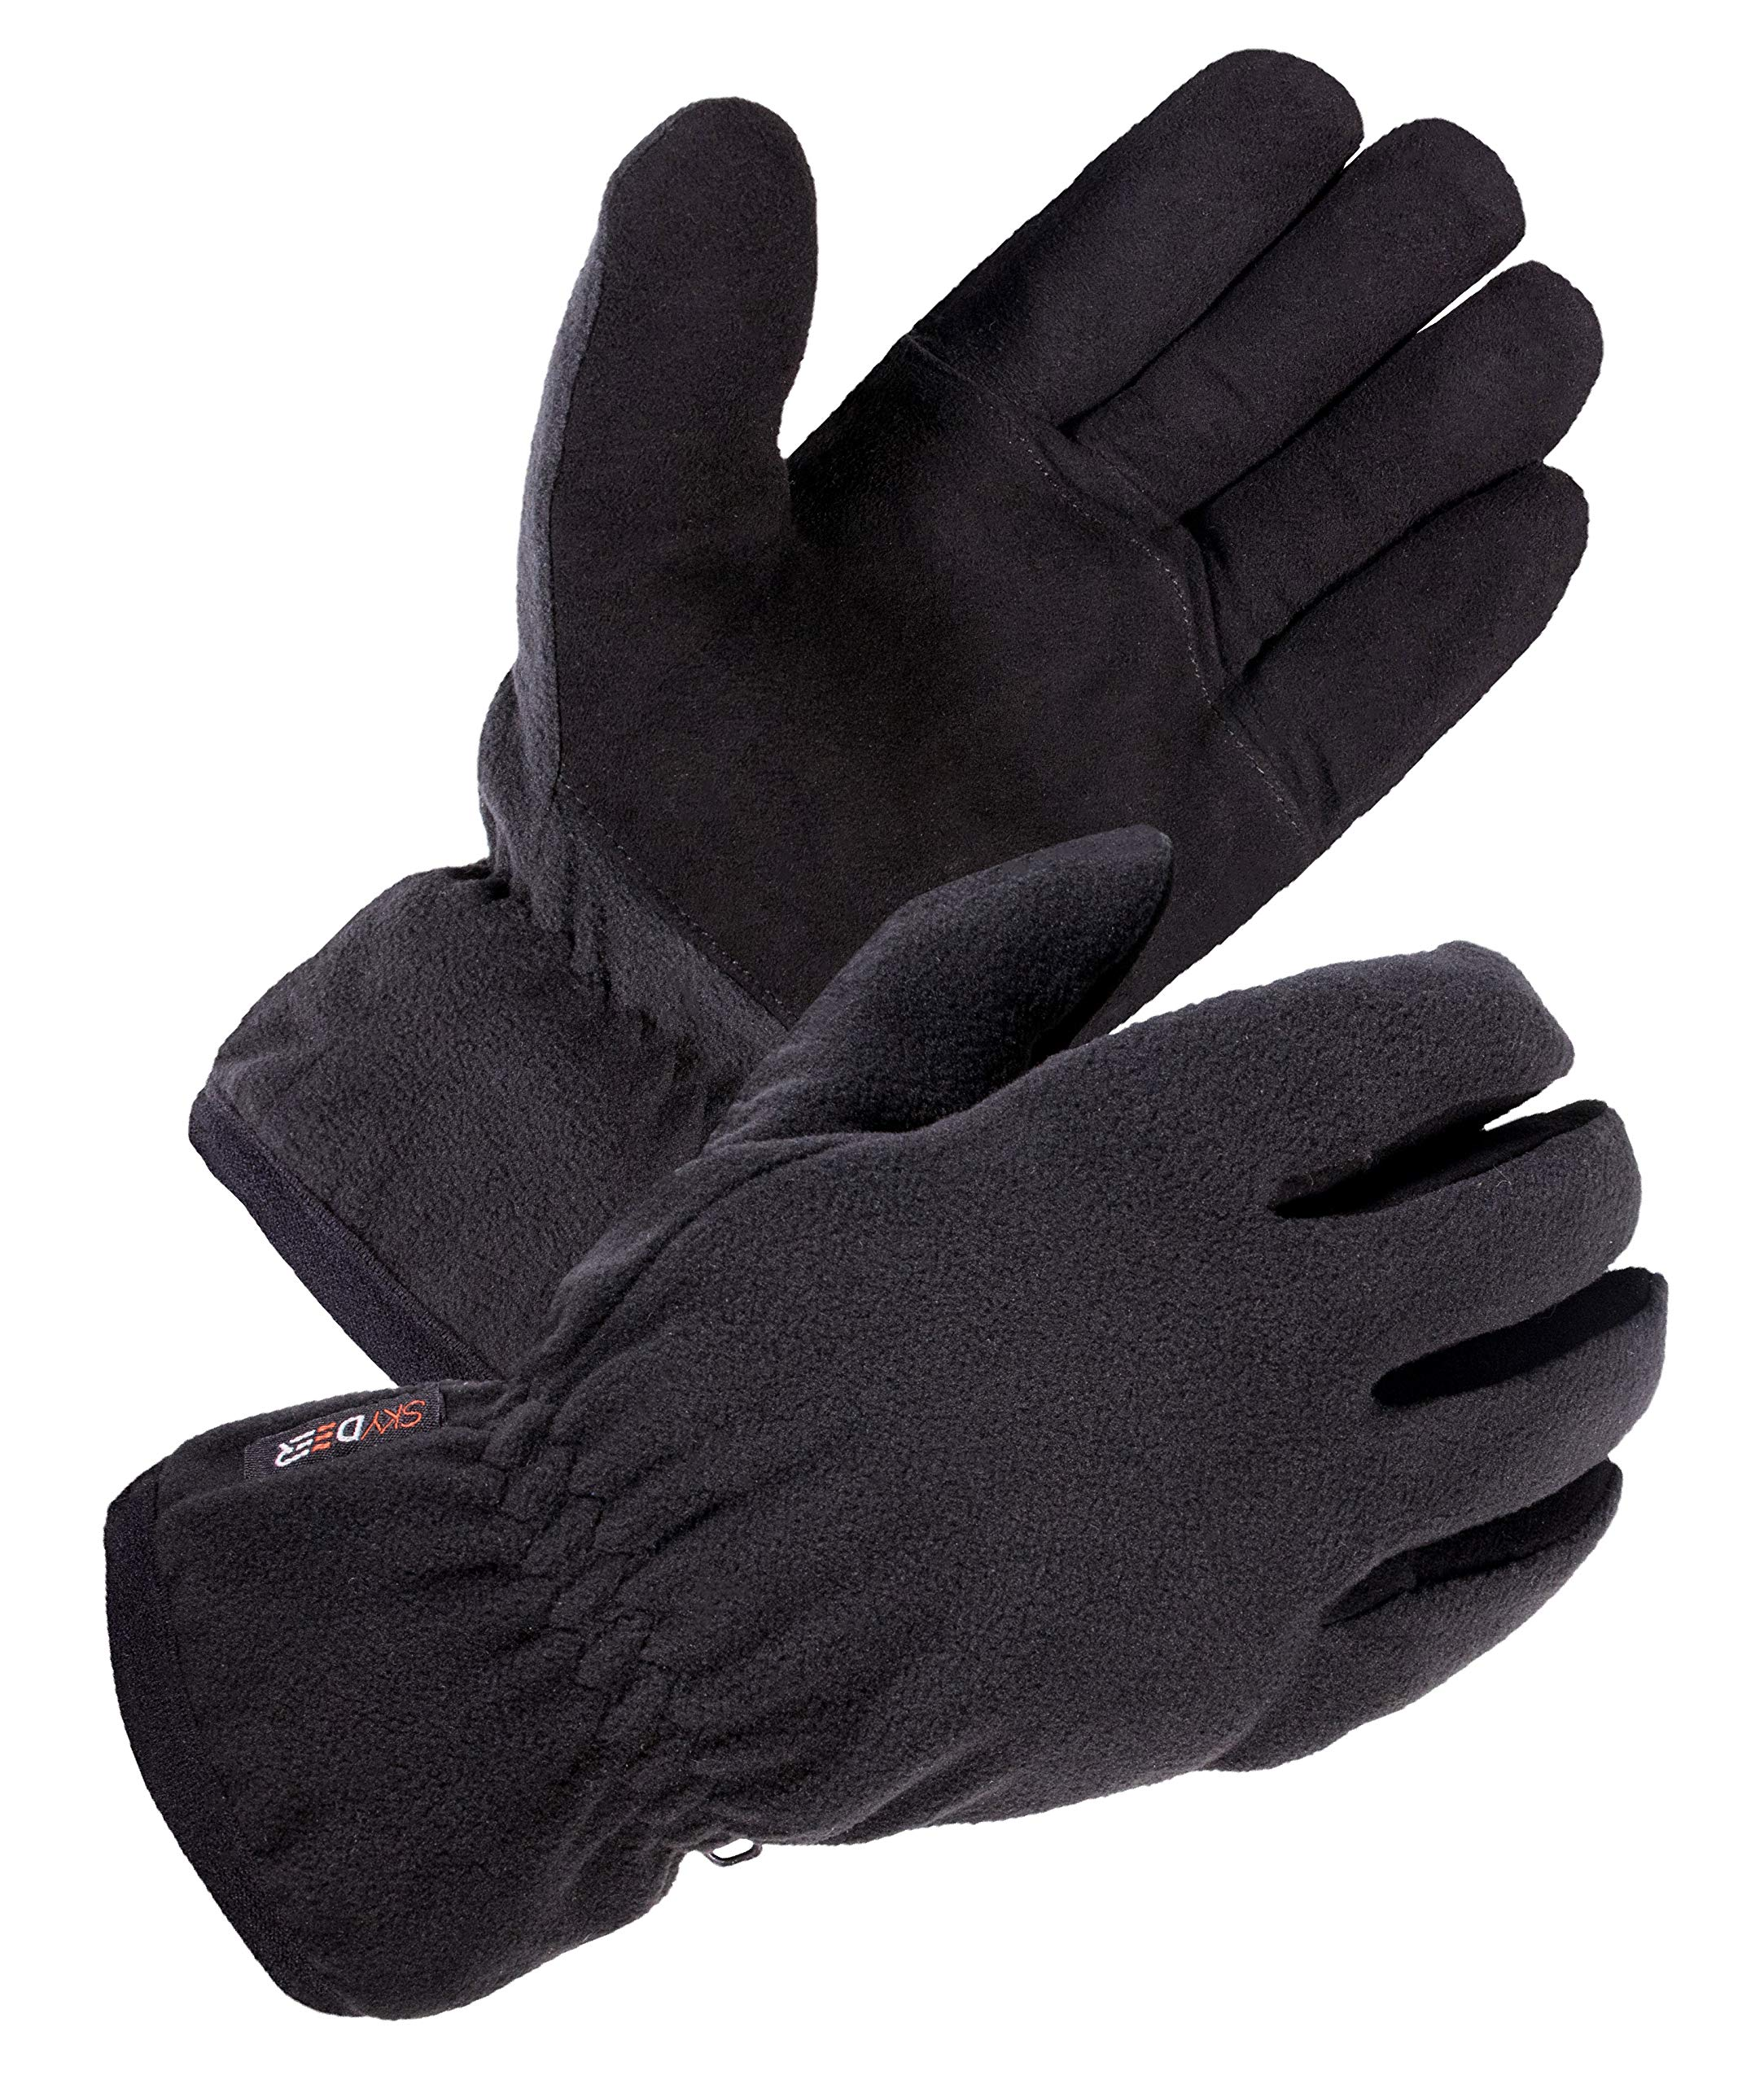 3fa81180f SKYDEER Driving Winter Gloves - Warm Soft Deerskin Suede Leather and  Windproof Polar Fleece Glove,